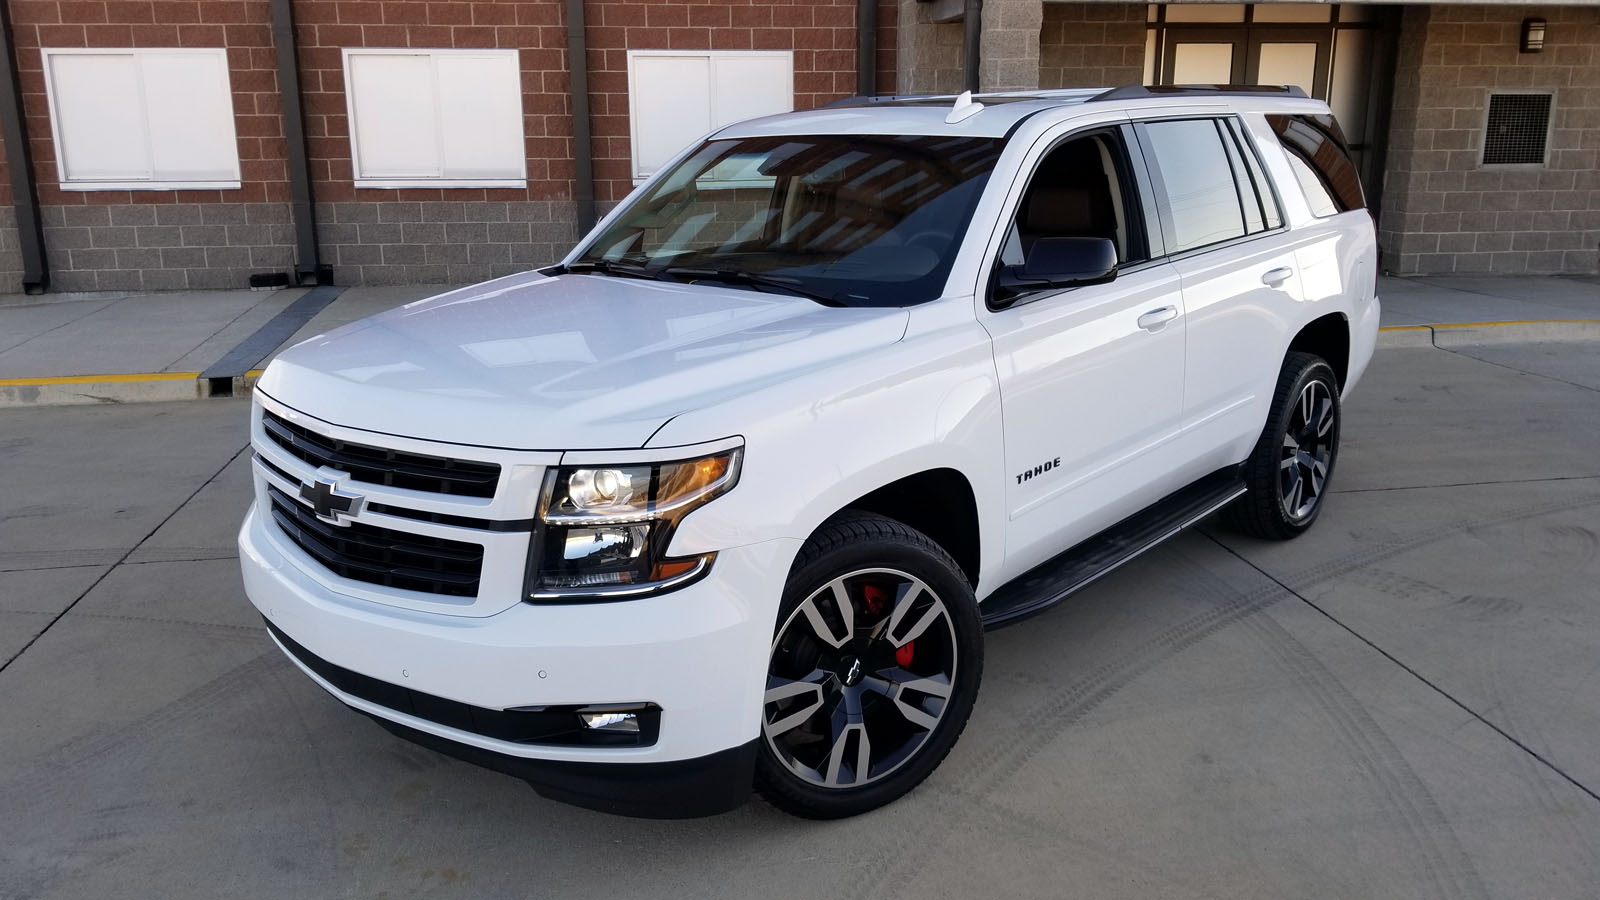 Used Chevy Tahoe >> 2018 Chevrolet Tahoe RST Review - AutoGuide.com